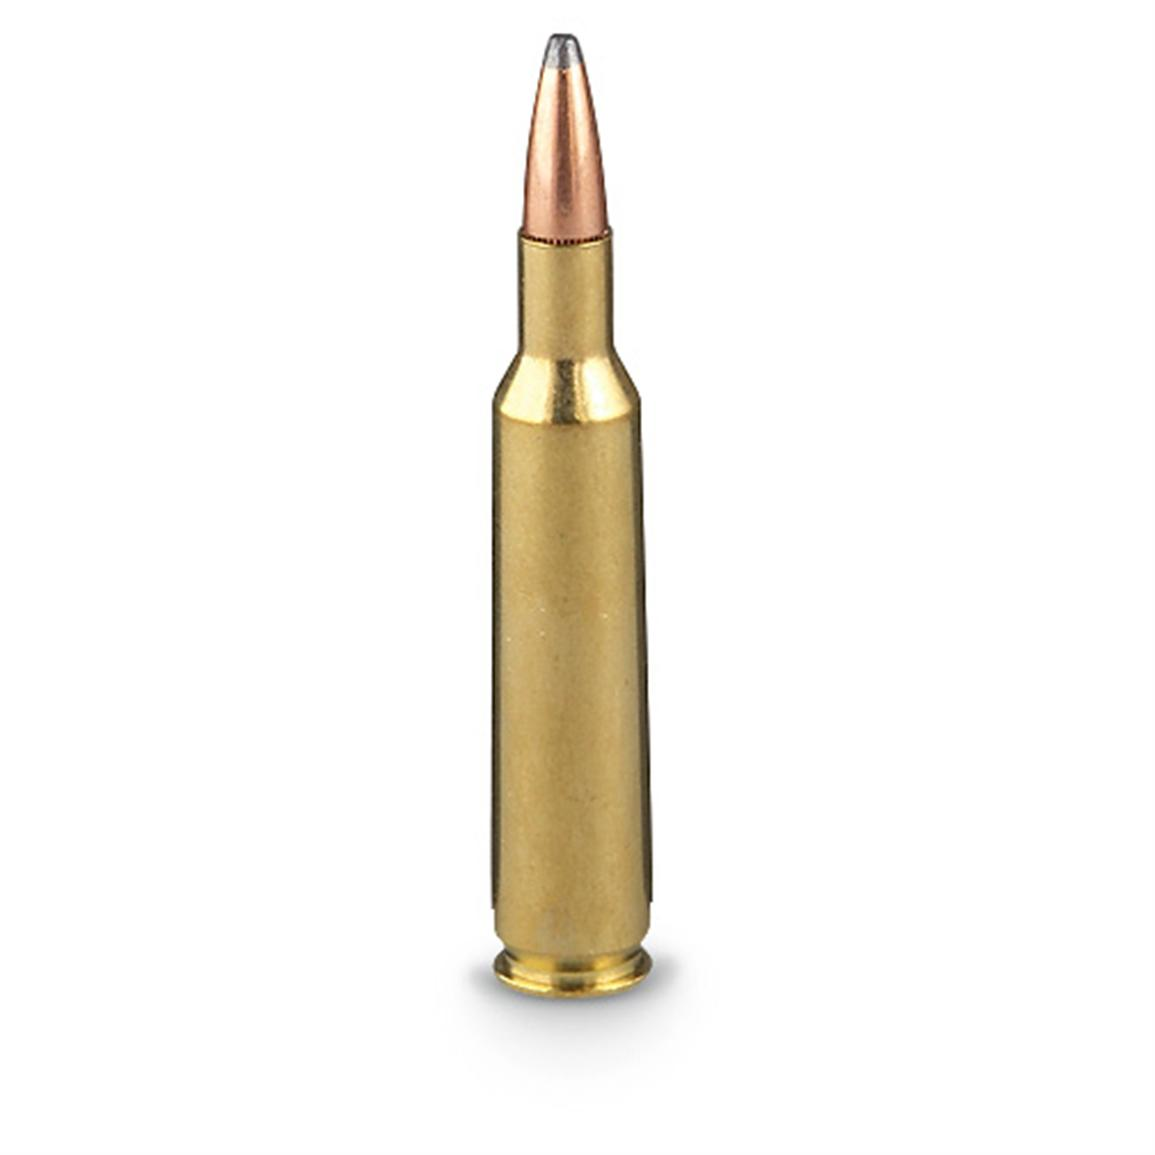 Interlock™ bullets